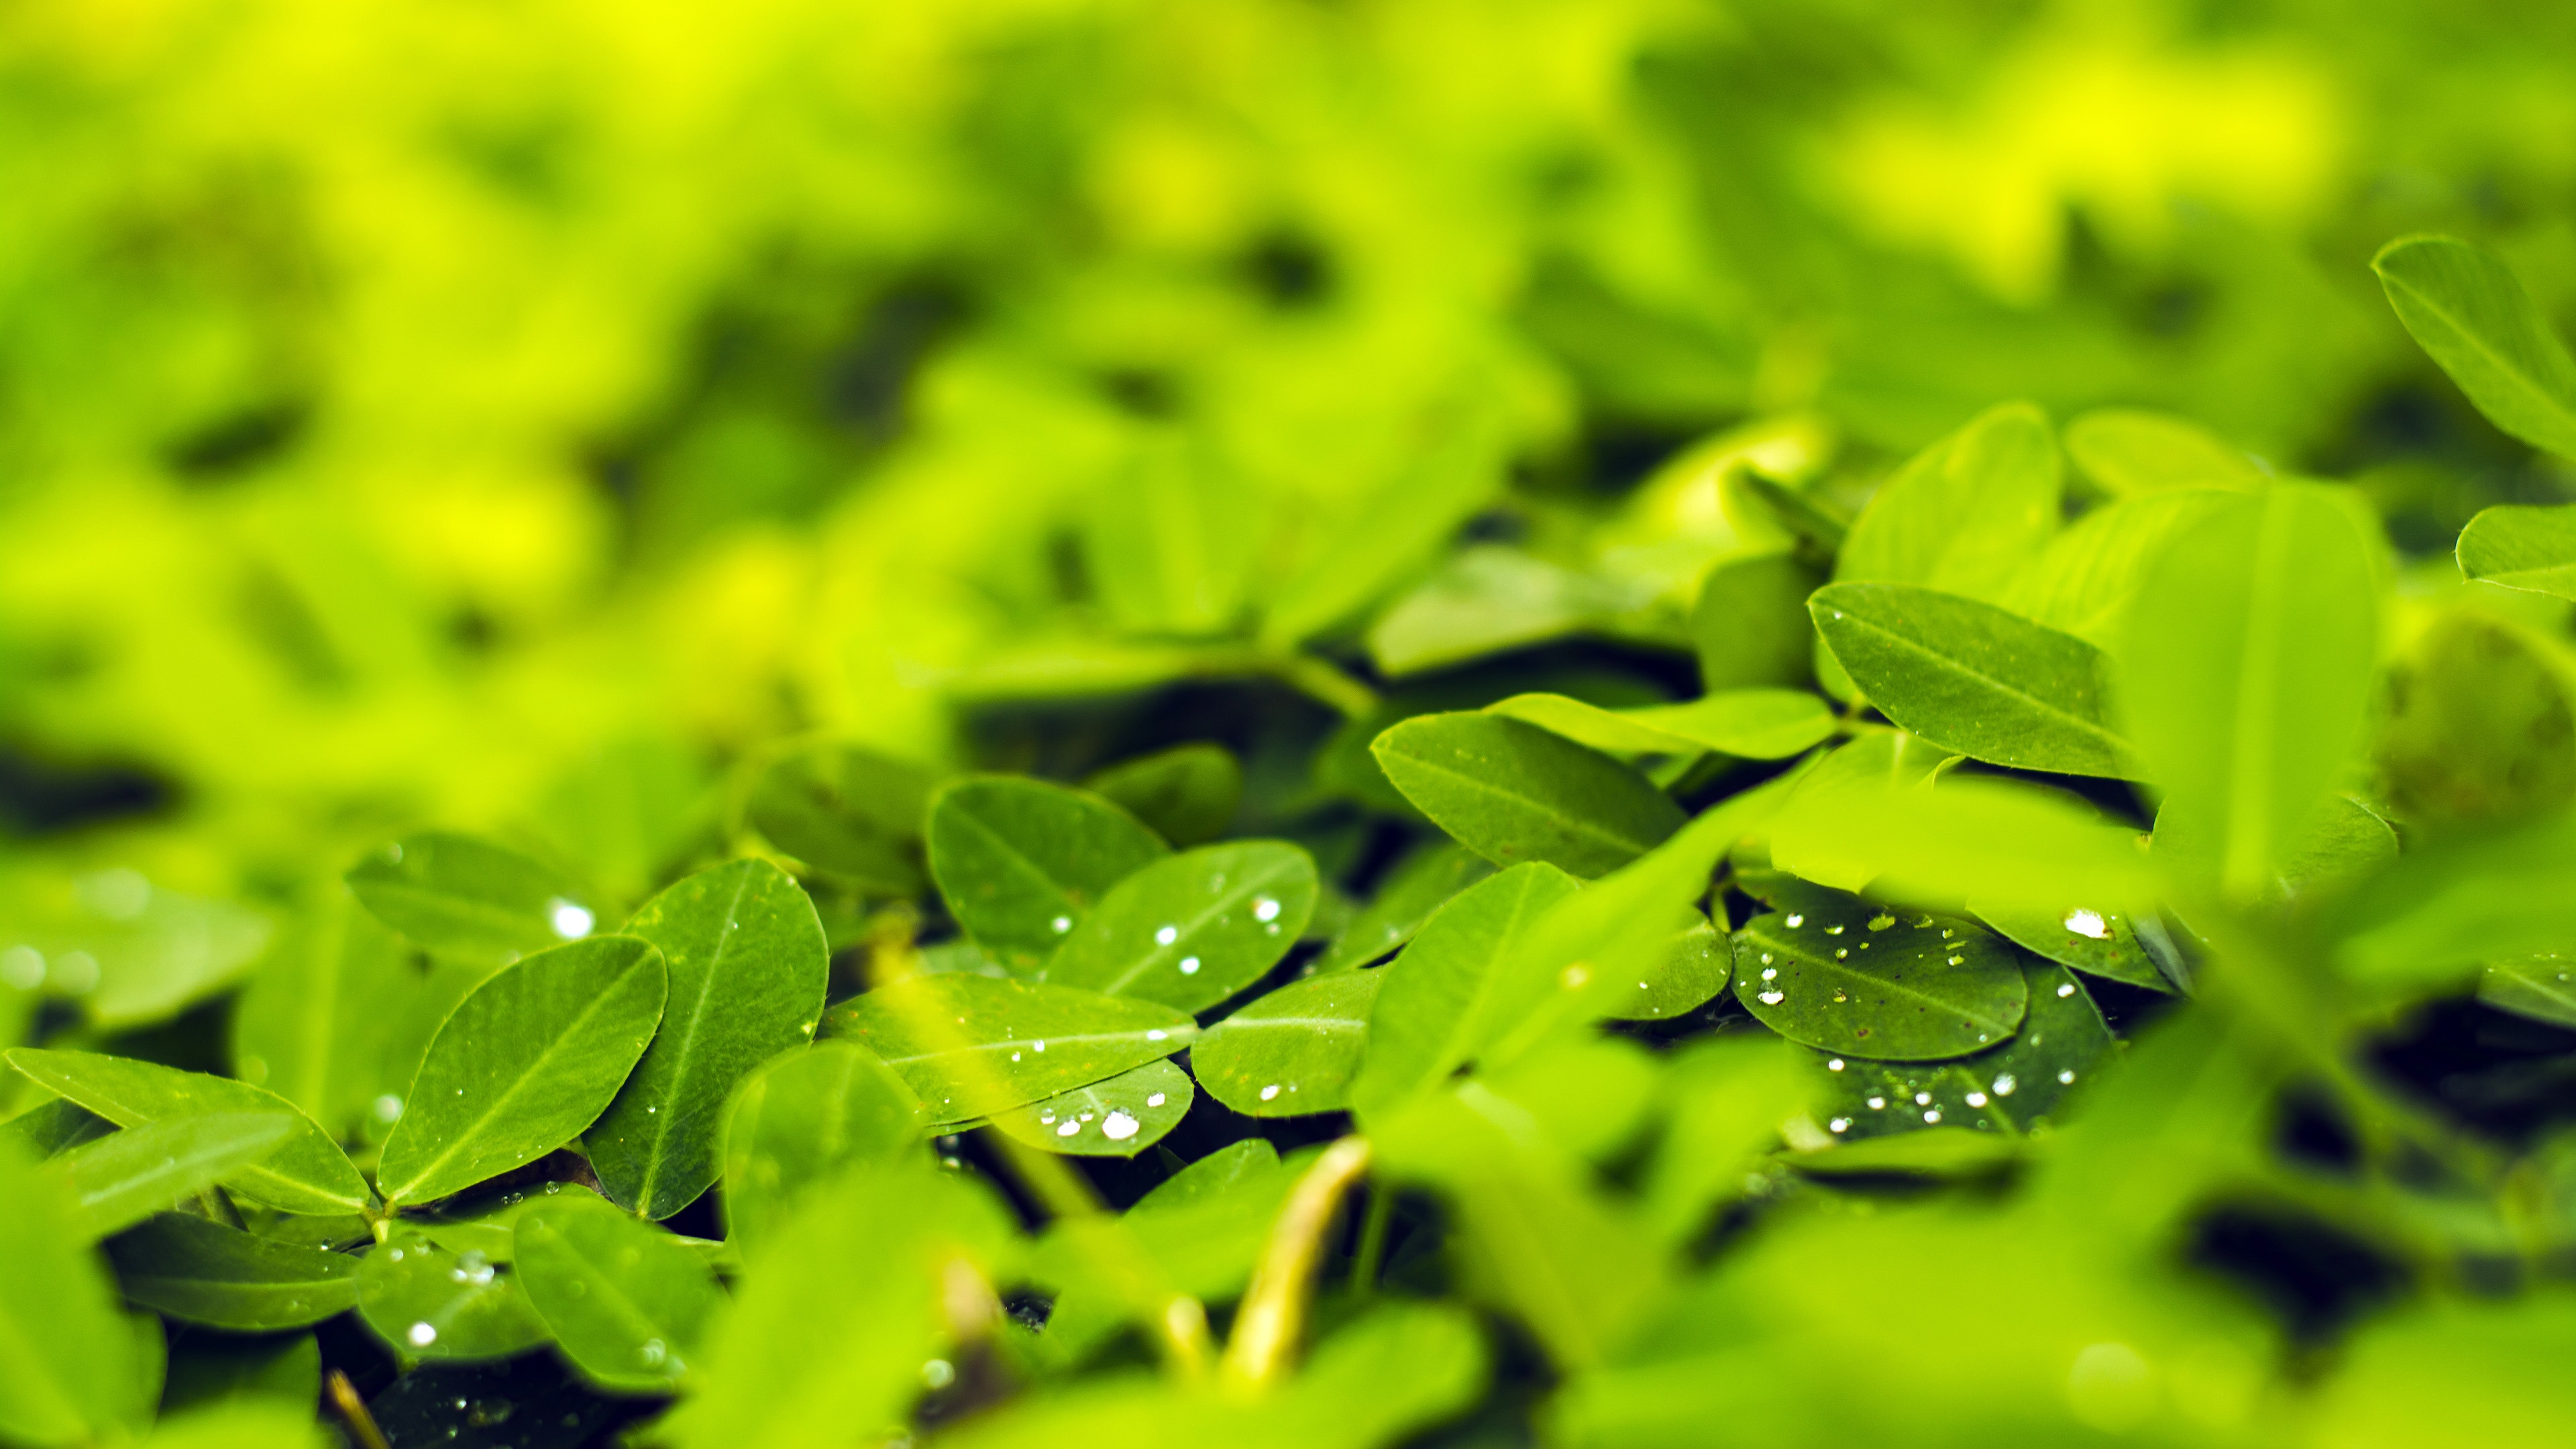 Spring fresh green leaves water droplets - 3840x2160 wallpaper download